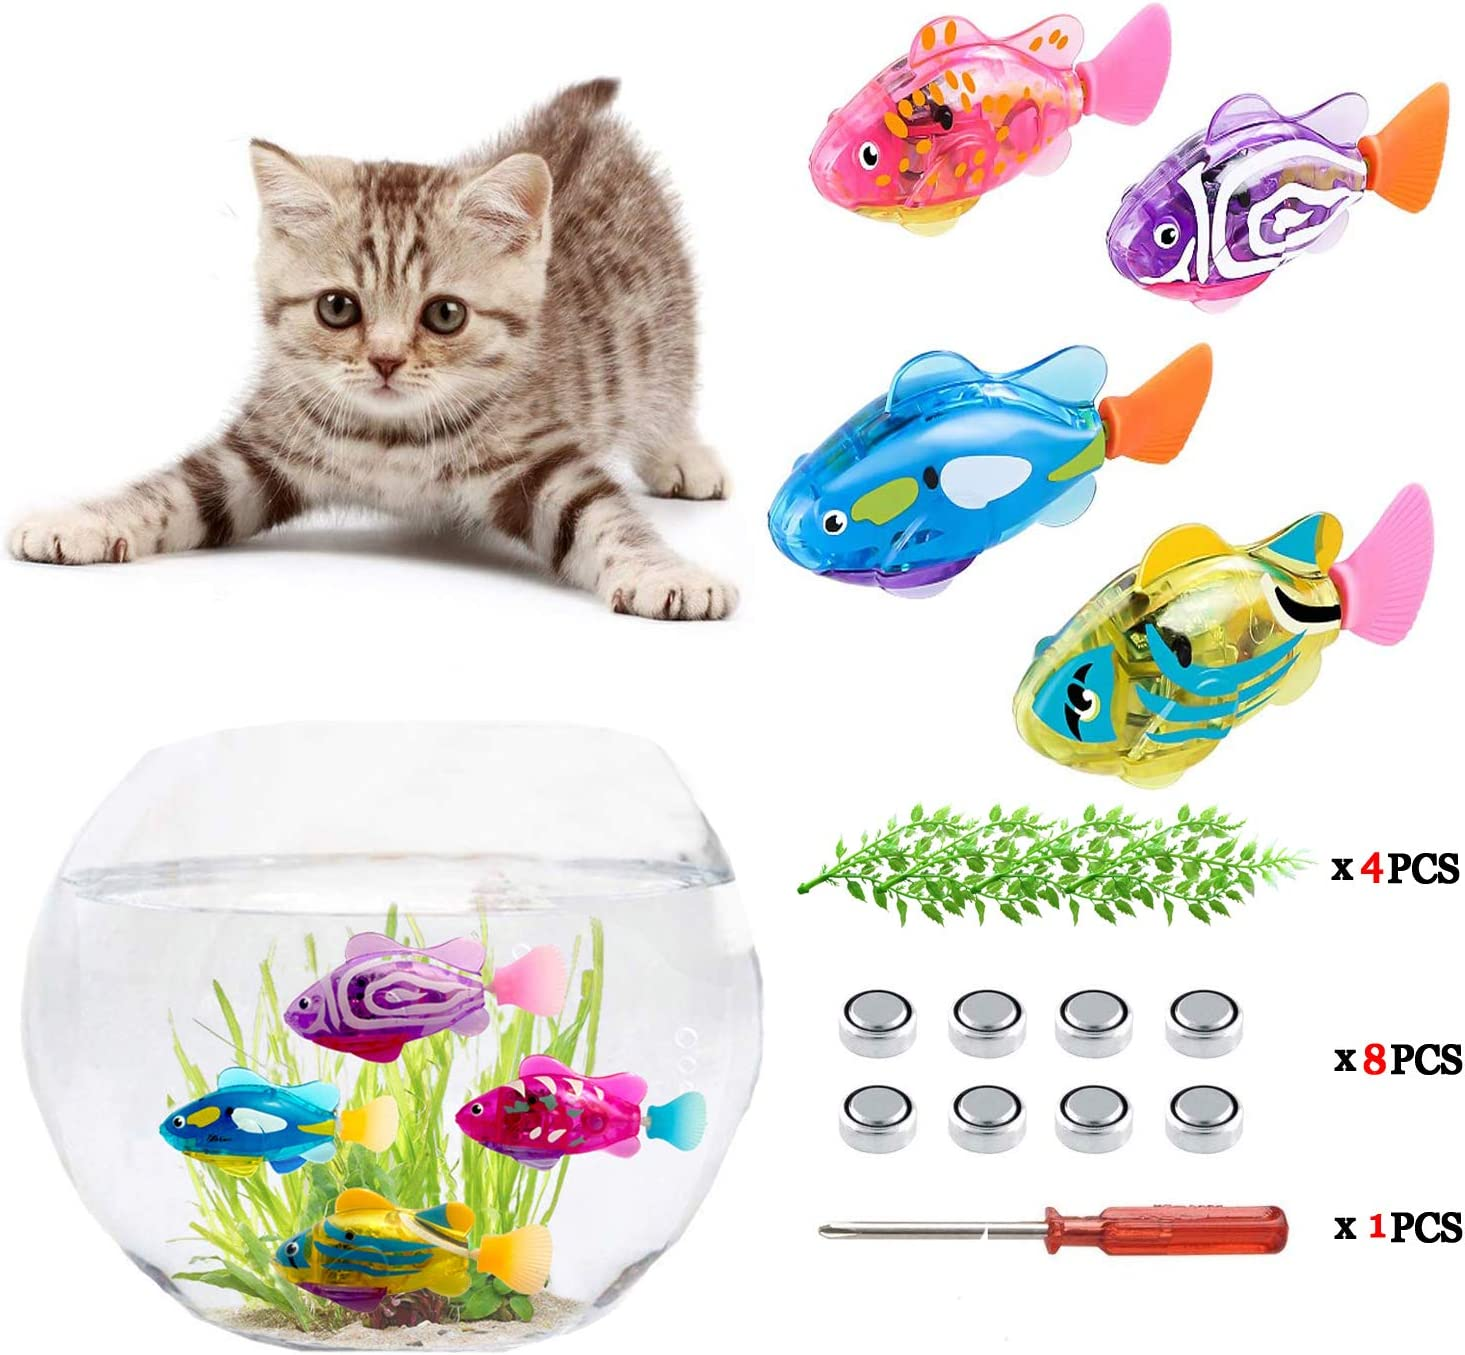 XYKTGH Swimming Robot Fish Toy for Kids with LED Light, Mini Aquarium Fish, 2020 New Bath Toys, Interactive Plastic Fish Toys (4 pcs), Electronic Cat Toy Gift to Stimulate Your Pet's Hunter Instincts